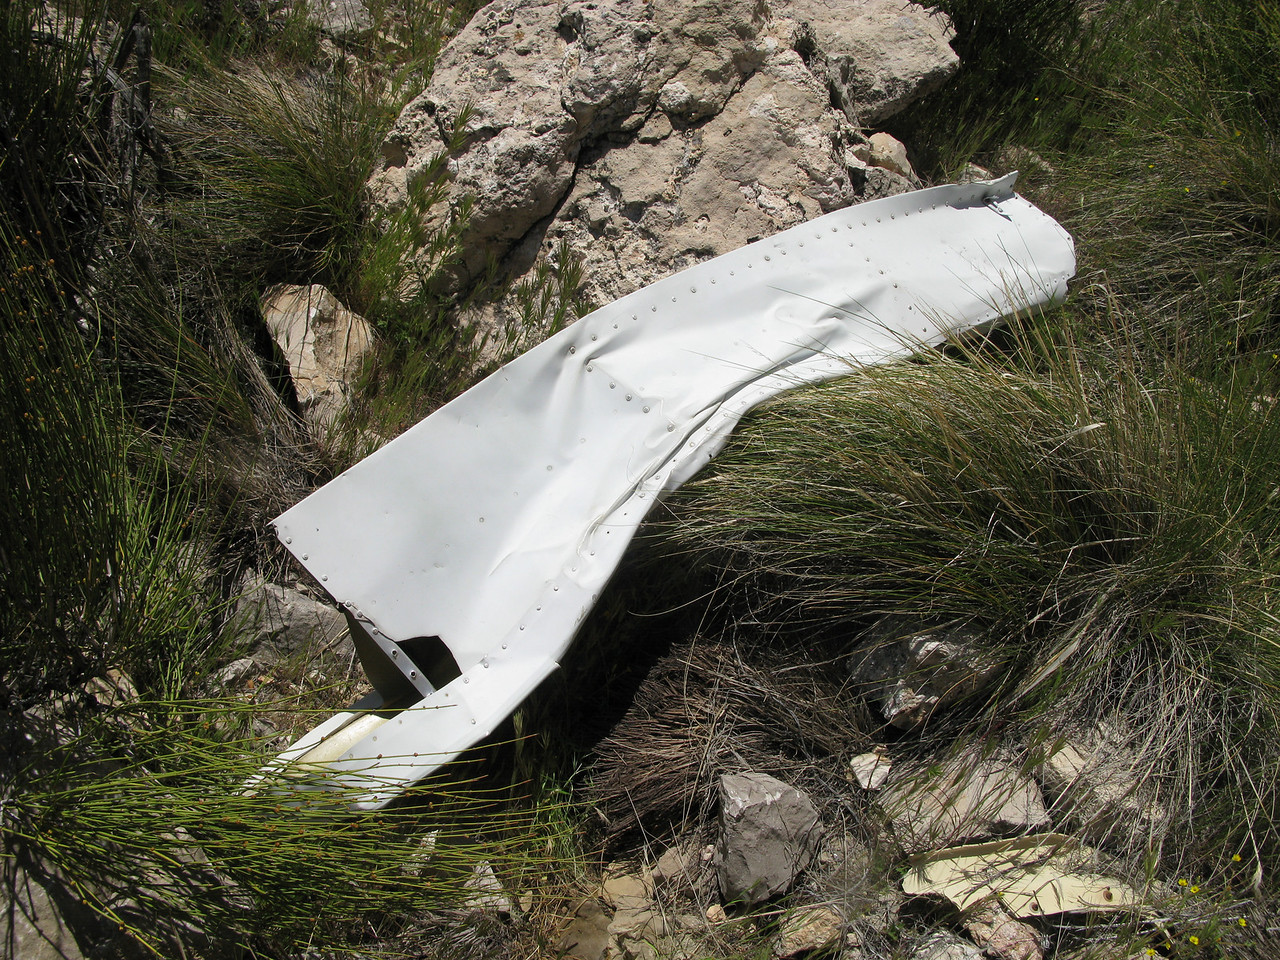 This horizontal stabilizer was thrown quite a distance from the main body of wreckage.